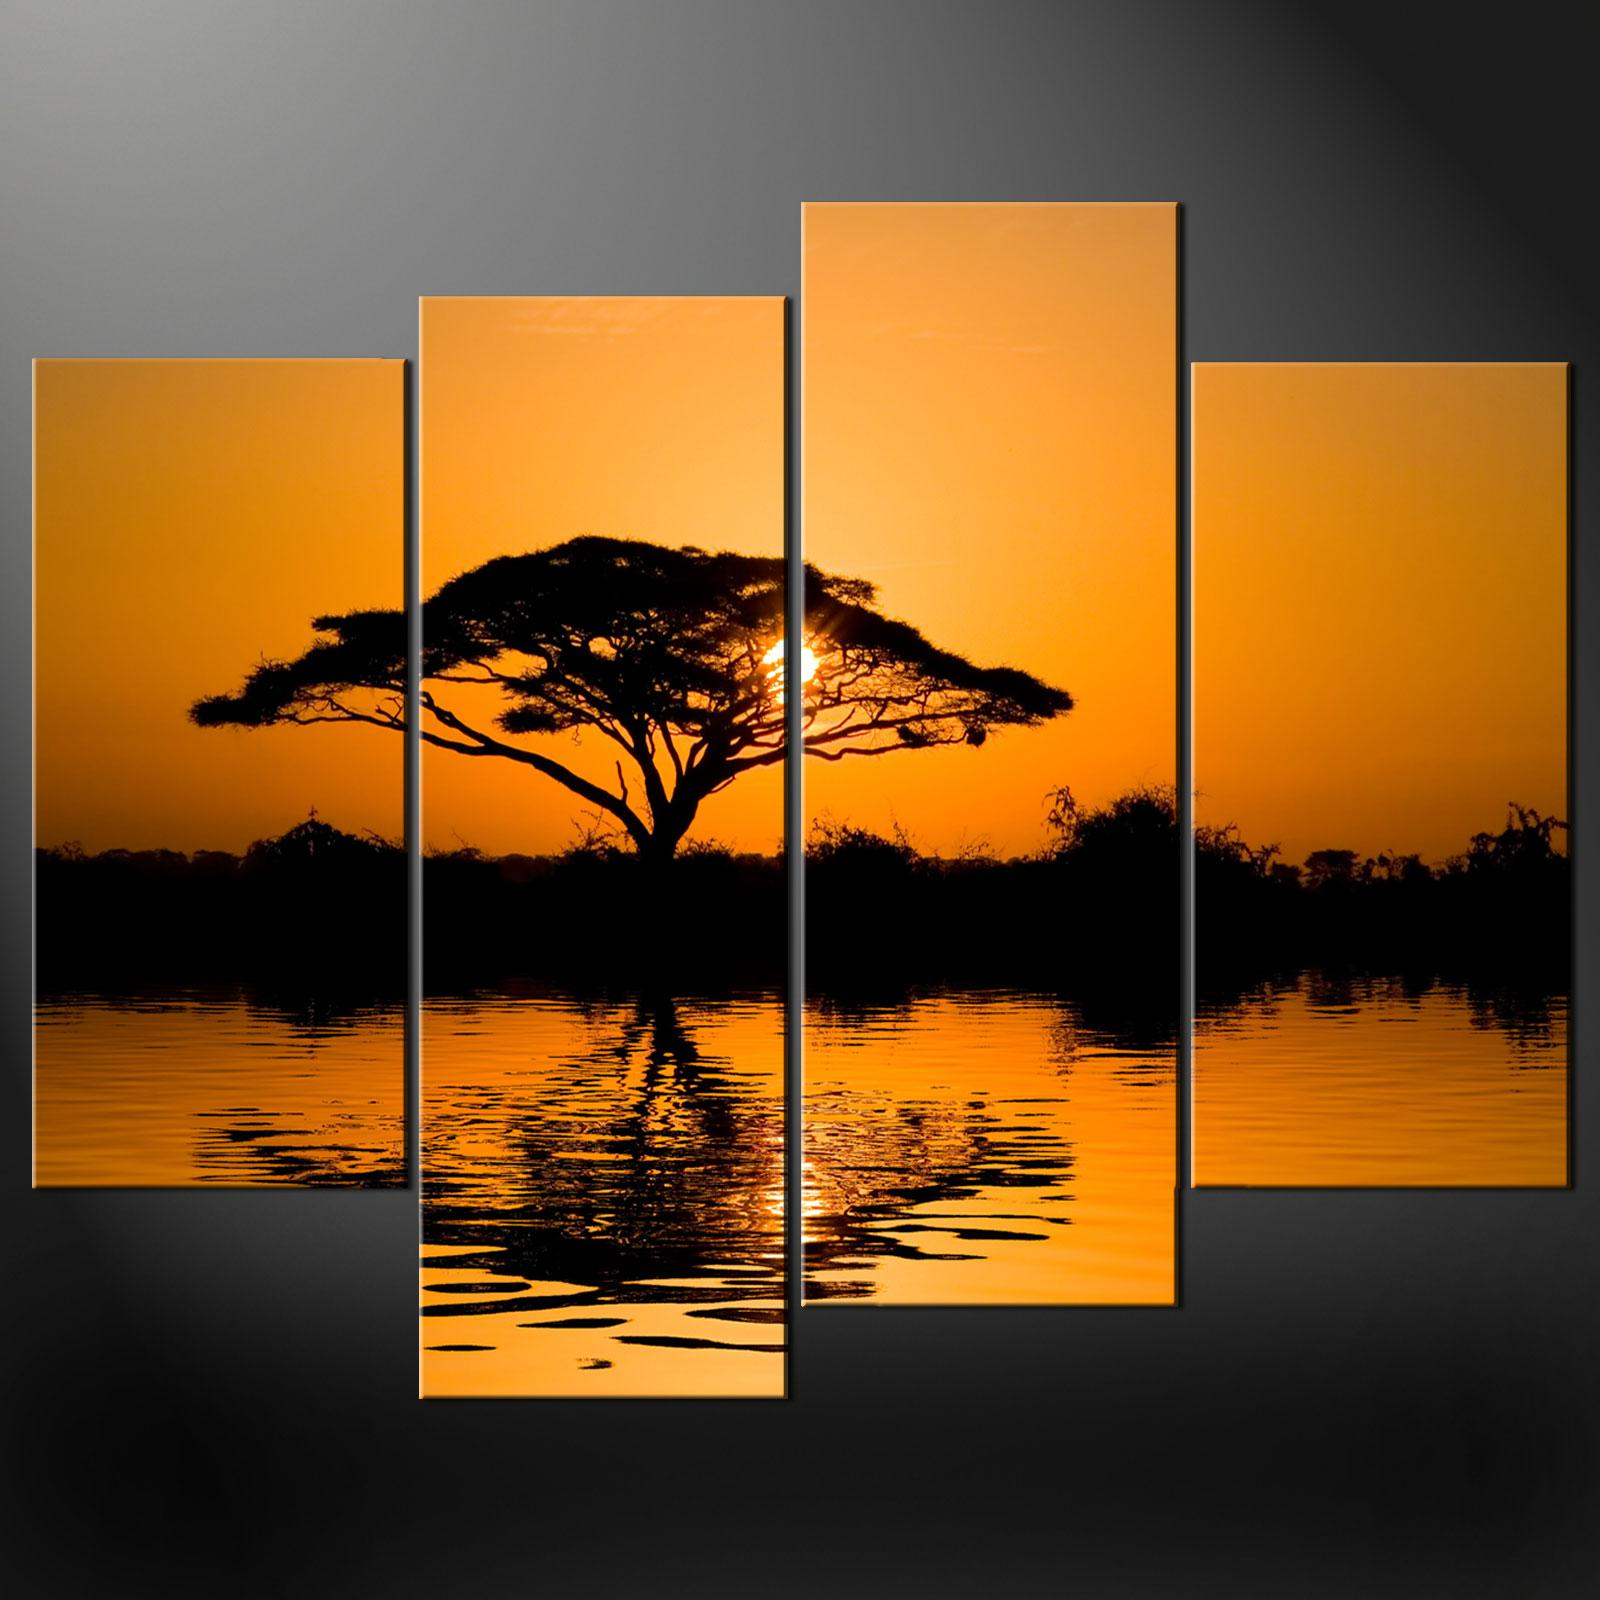 cheap framed wall art Framed 4 Panel Large African Wall Art Decor Modern Sunset Oil  cheap framed wall art